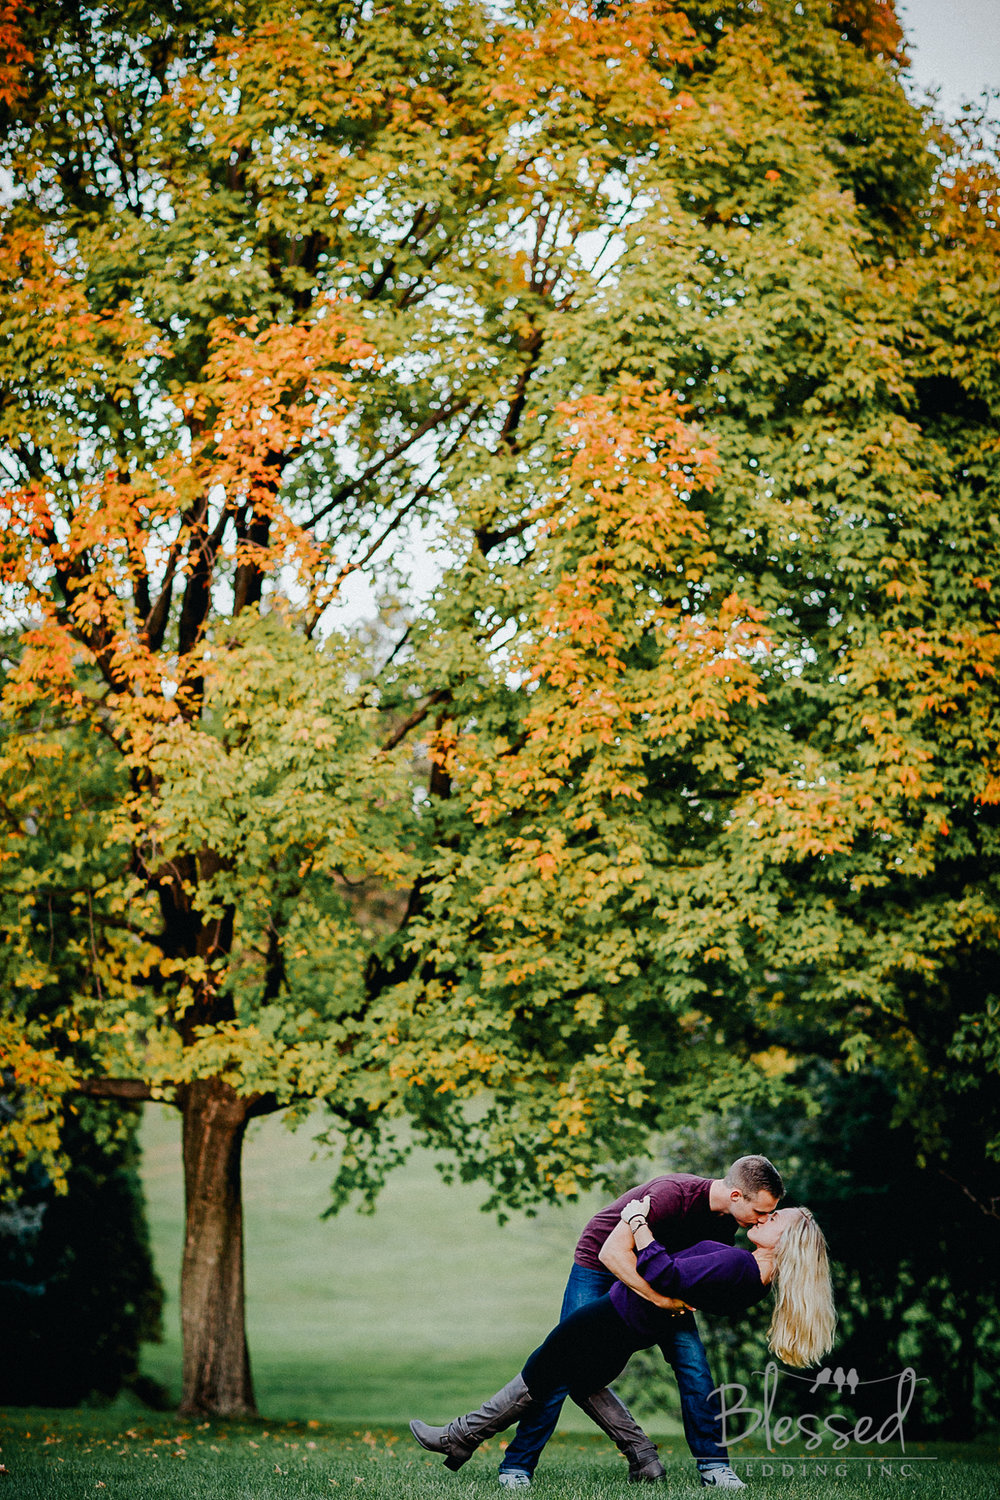 Destination Wedding Photography Minnesota By Blessed Wedding Photographers-17.jpg